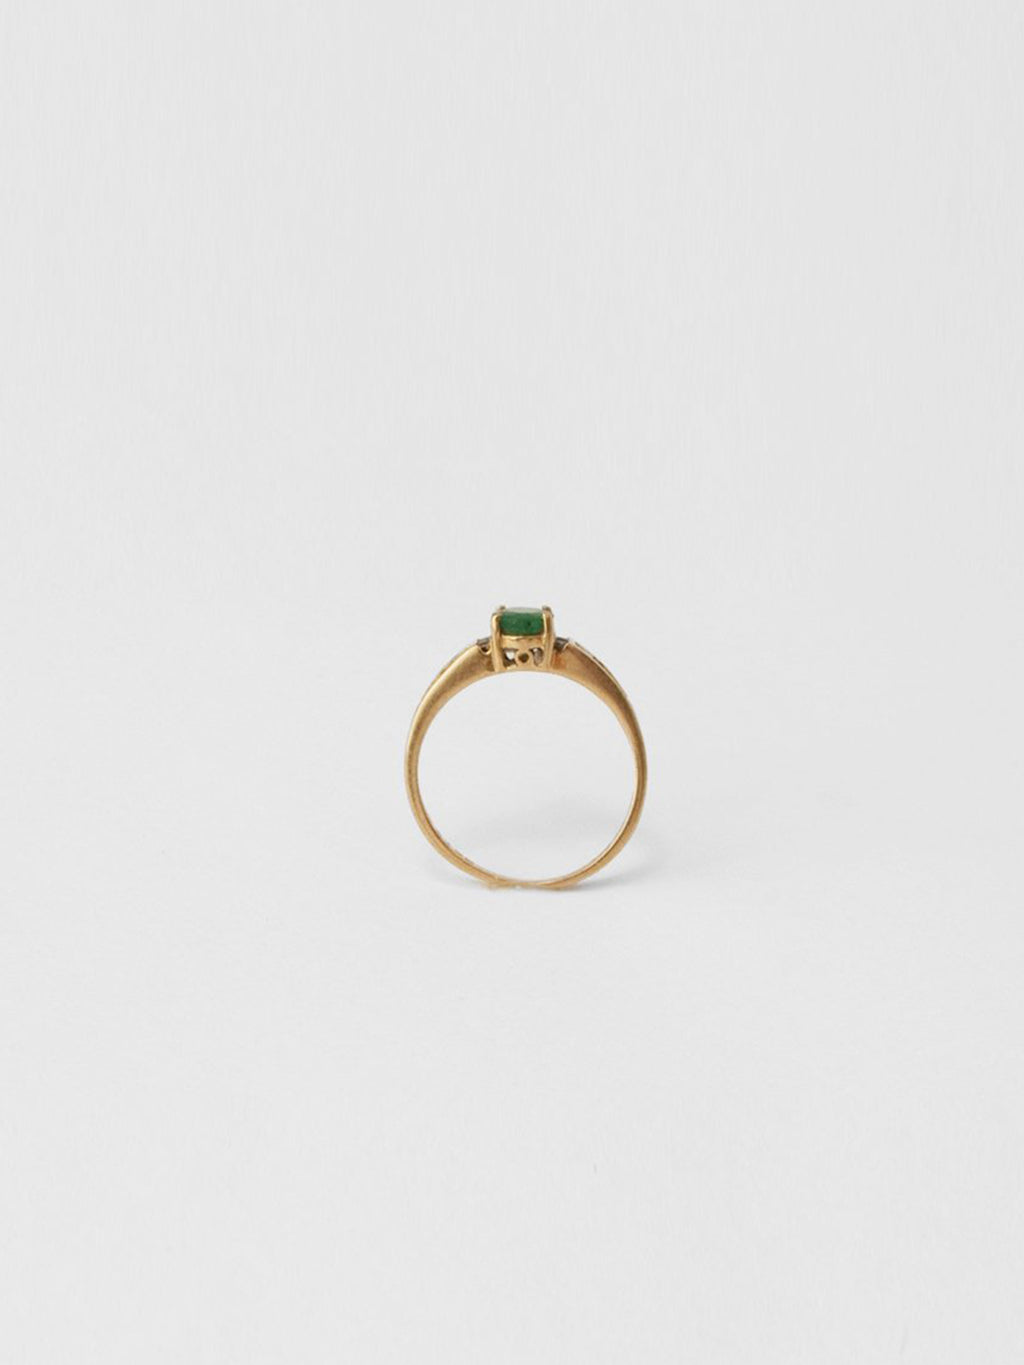 Oval Emerald & Diamond Ring / 14Kt Yellow Gold